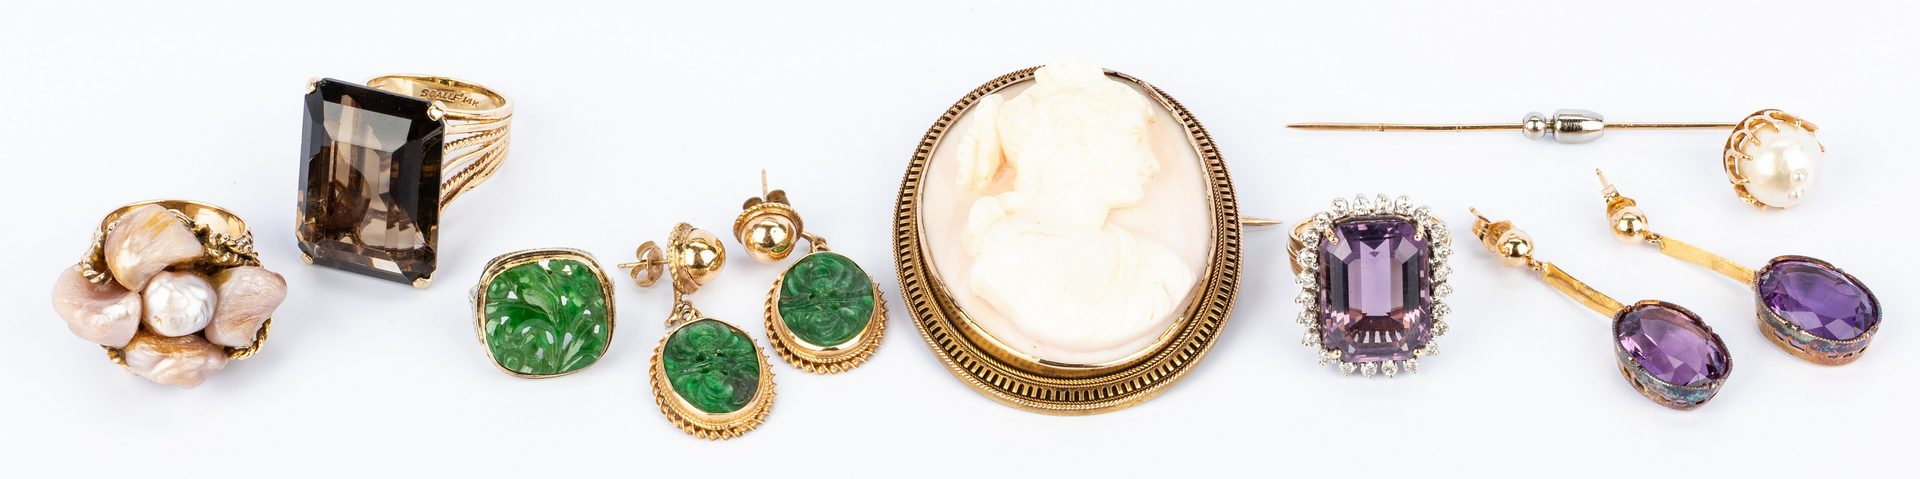 Lot 144: 8 Gold and Semi-precious Jewelry Items